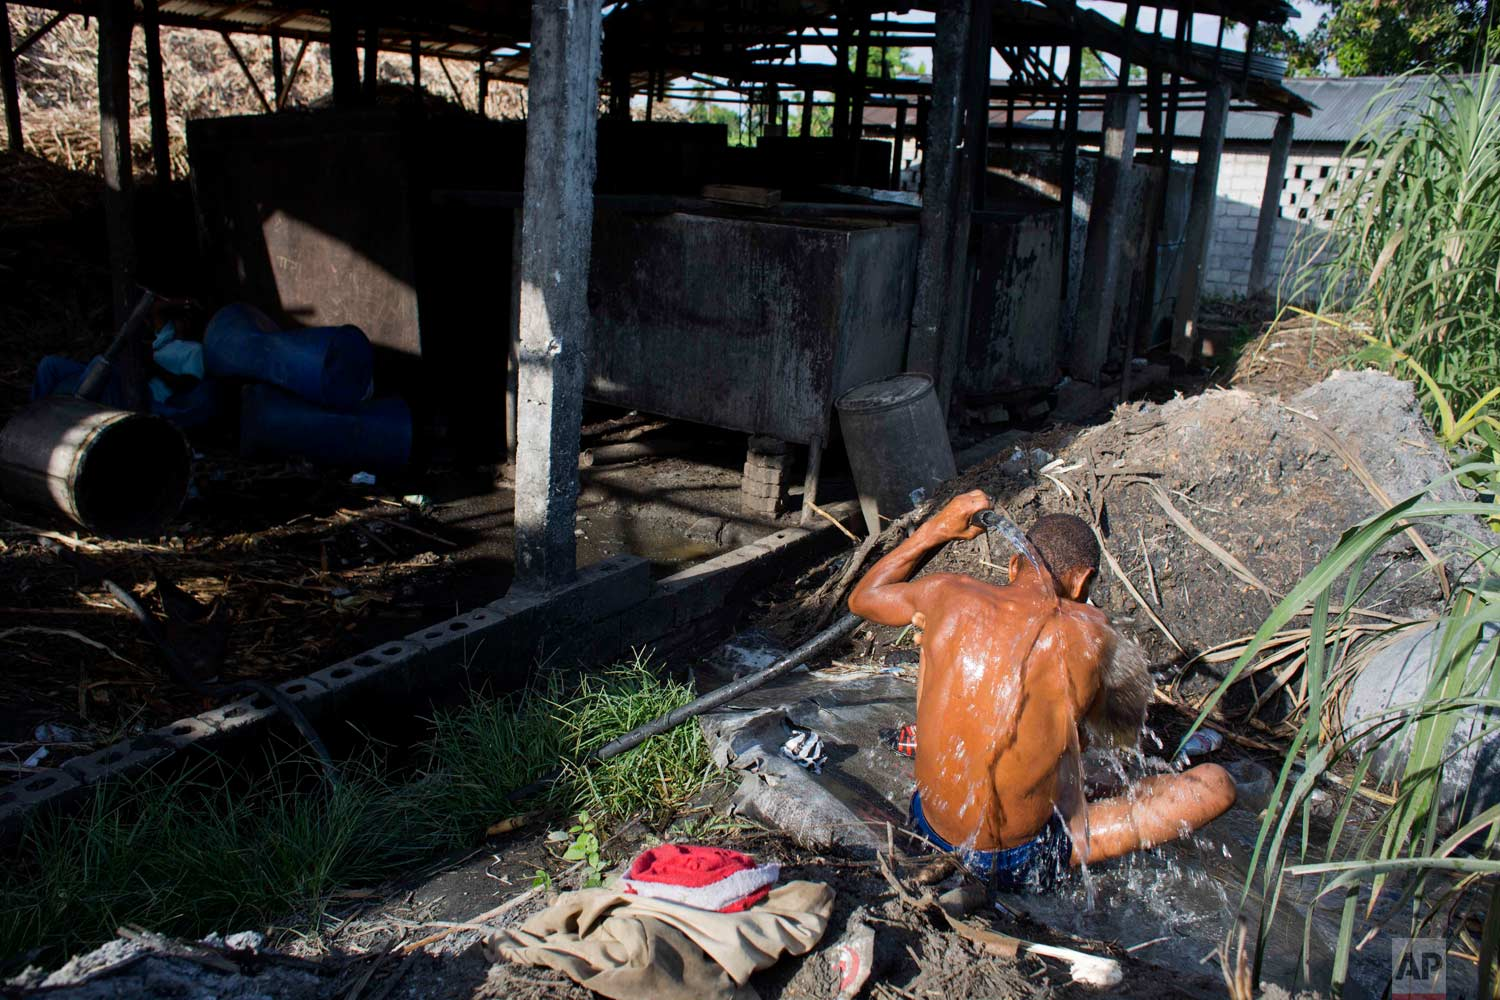 In this June 19, 2017 photo, a man washes off at the end of his eight-hour shift carrying bagasse, the fiber left over after pressing juice from sugar cane, at the Ti Jean distillery, which produces clairin, a sugar-based alcoholic drink, in Leogane, Haiti. Clairin, or kleren as it's known in Haitian Creole, is produced at hundreds of small distilleries scattered throughout Haiti. (AP Photo/Dieu Nalio Chery)